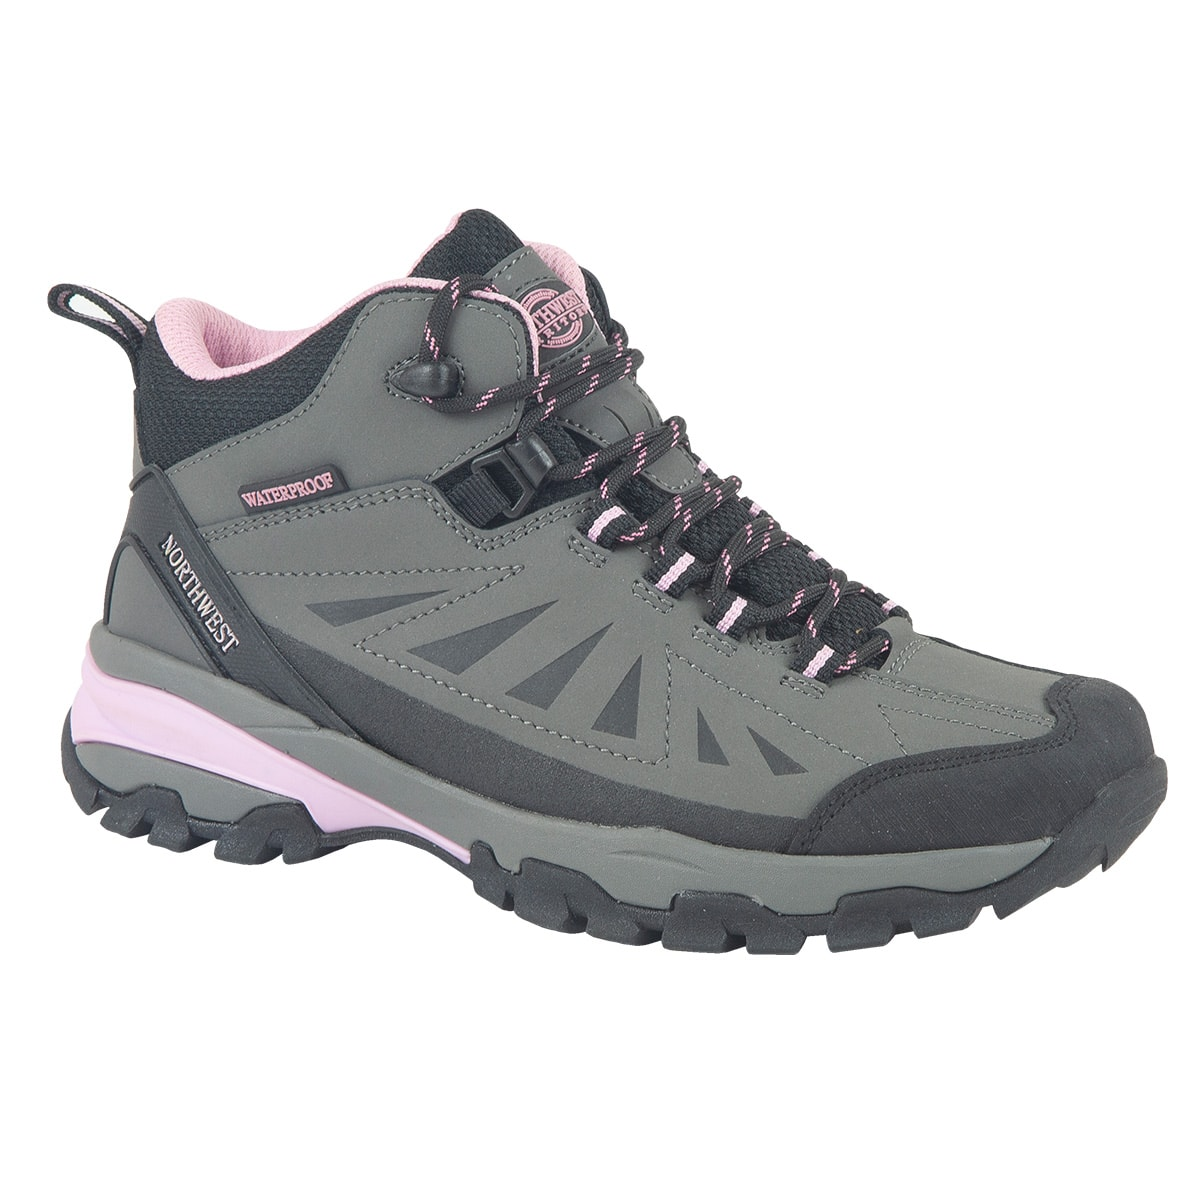 c311508f410 Northwest Territory | Ladies Hiking Boots | Mens Hiking Boots